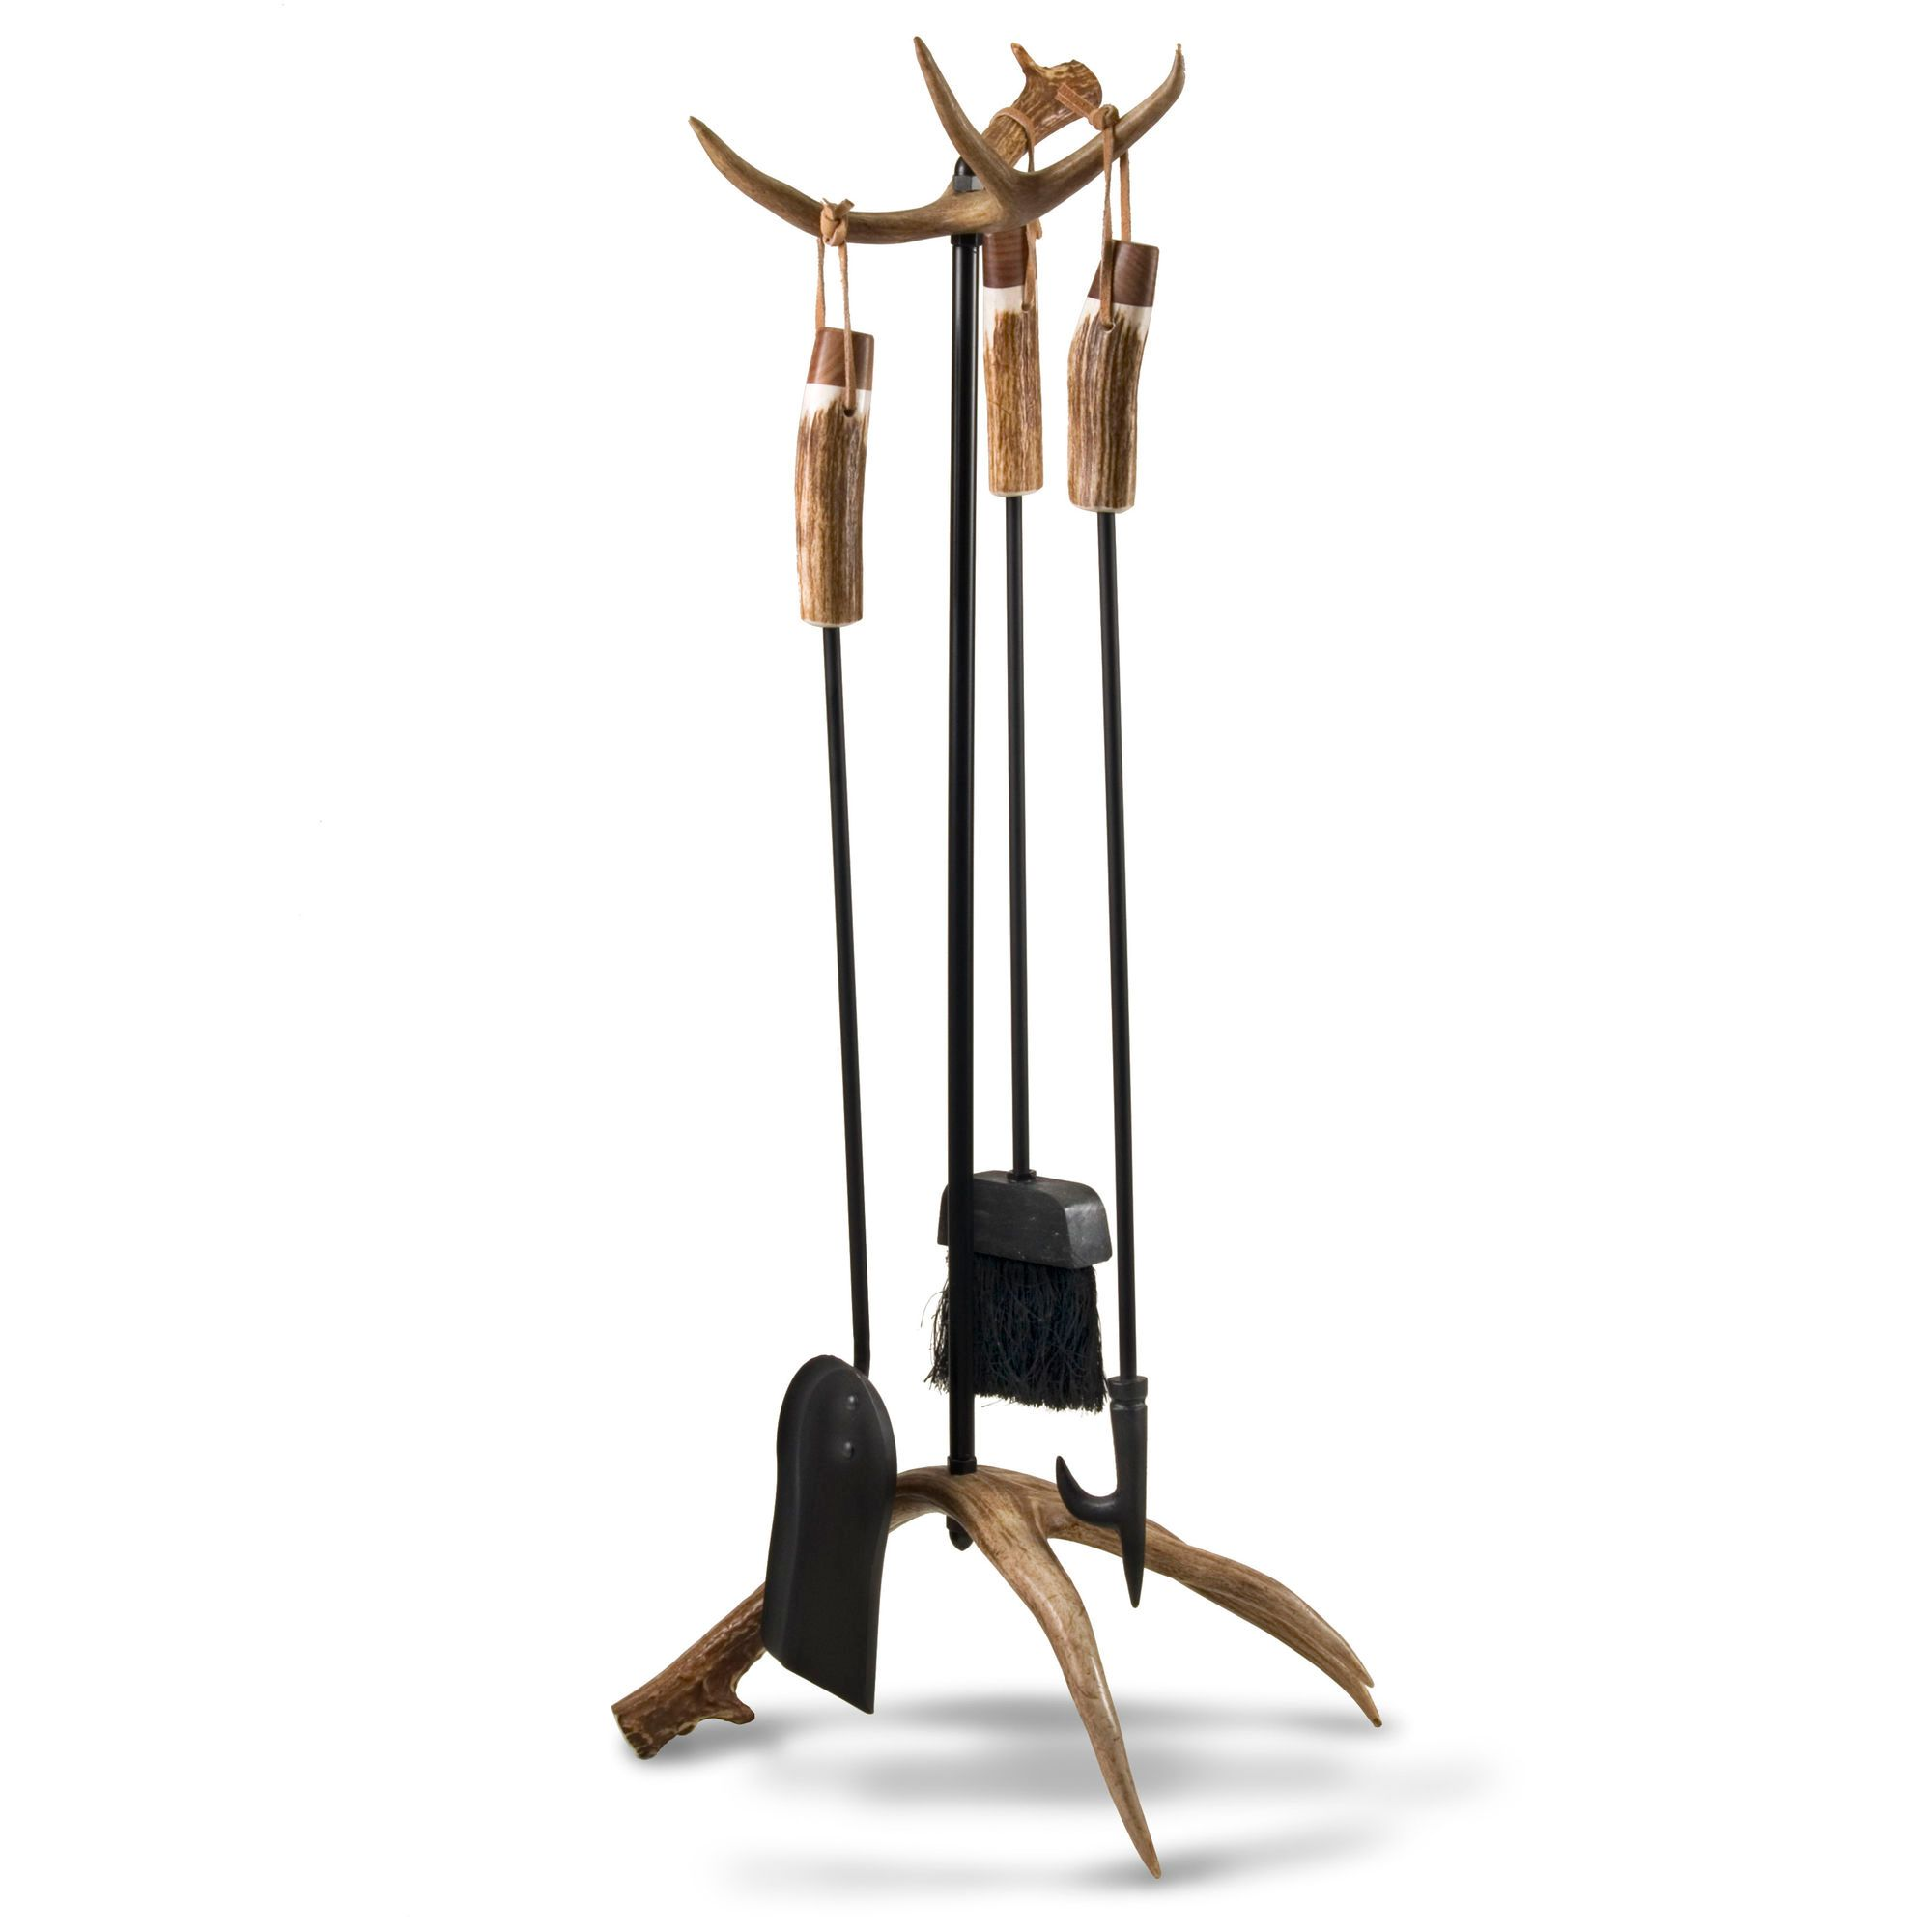 Our unique fireplace Deer Antler Fireplace Tools & Base are made from authentic antlers. The base and handles will add the right touch to your fireplace.